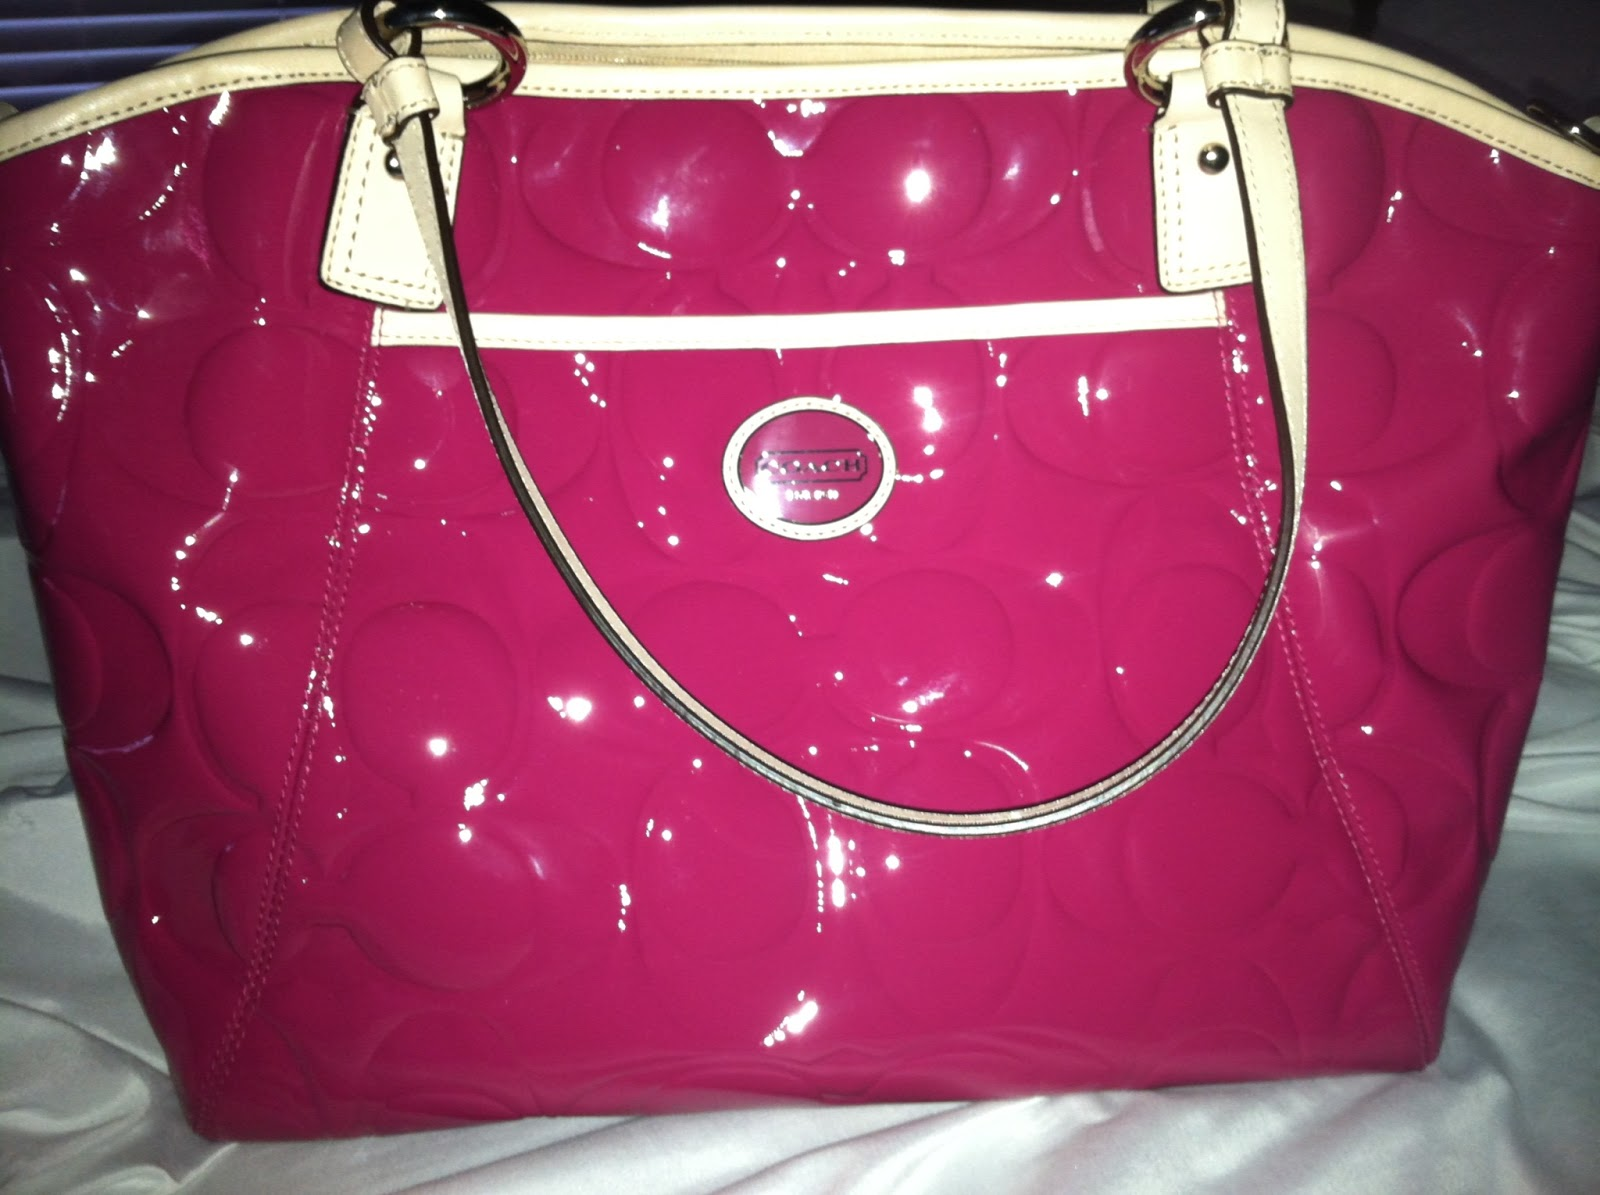 5ebf53de0c Fabulously Chic  Review  Coach Patent Leather Tote In Hot Pink